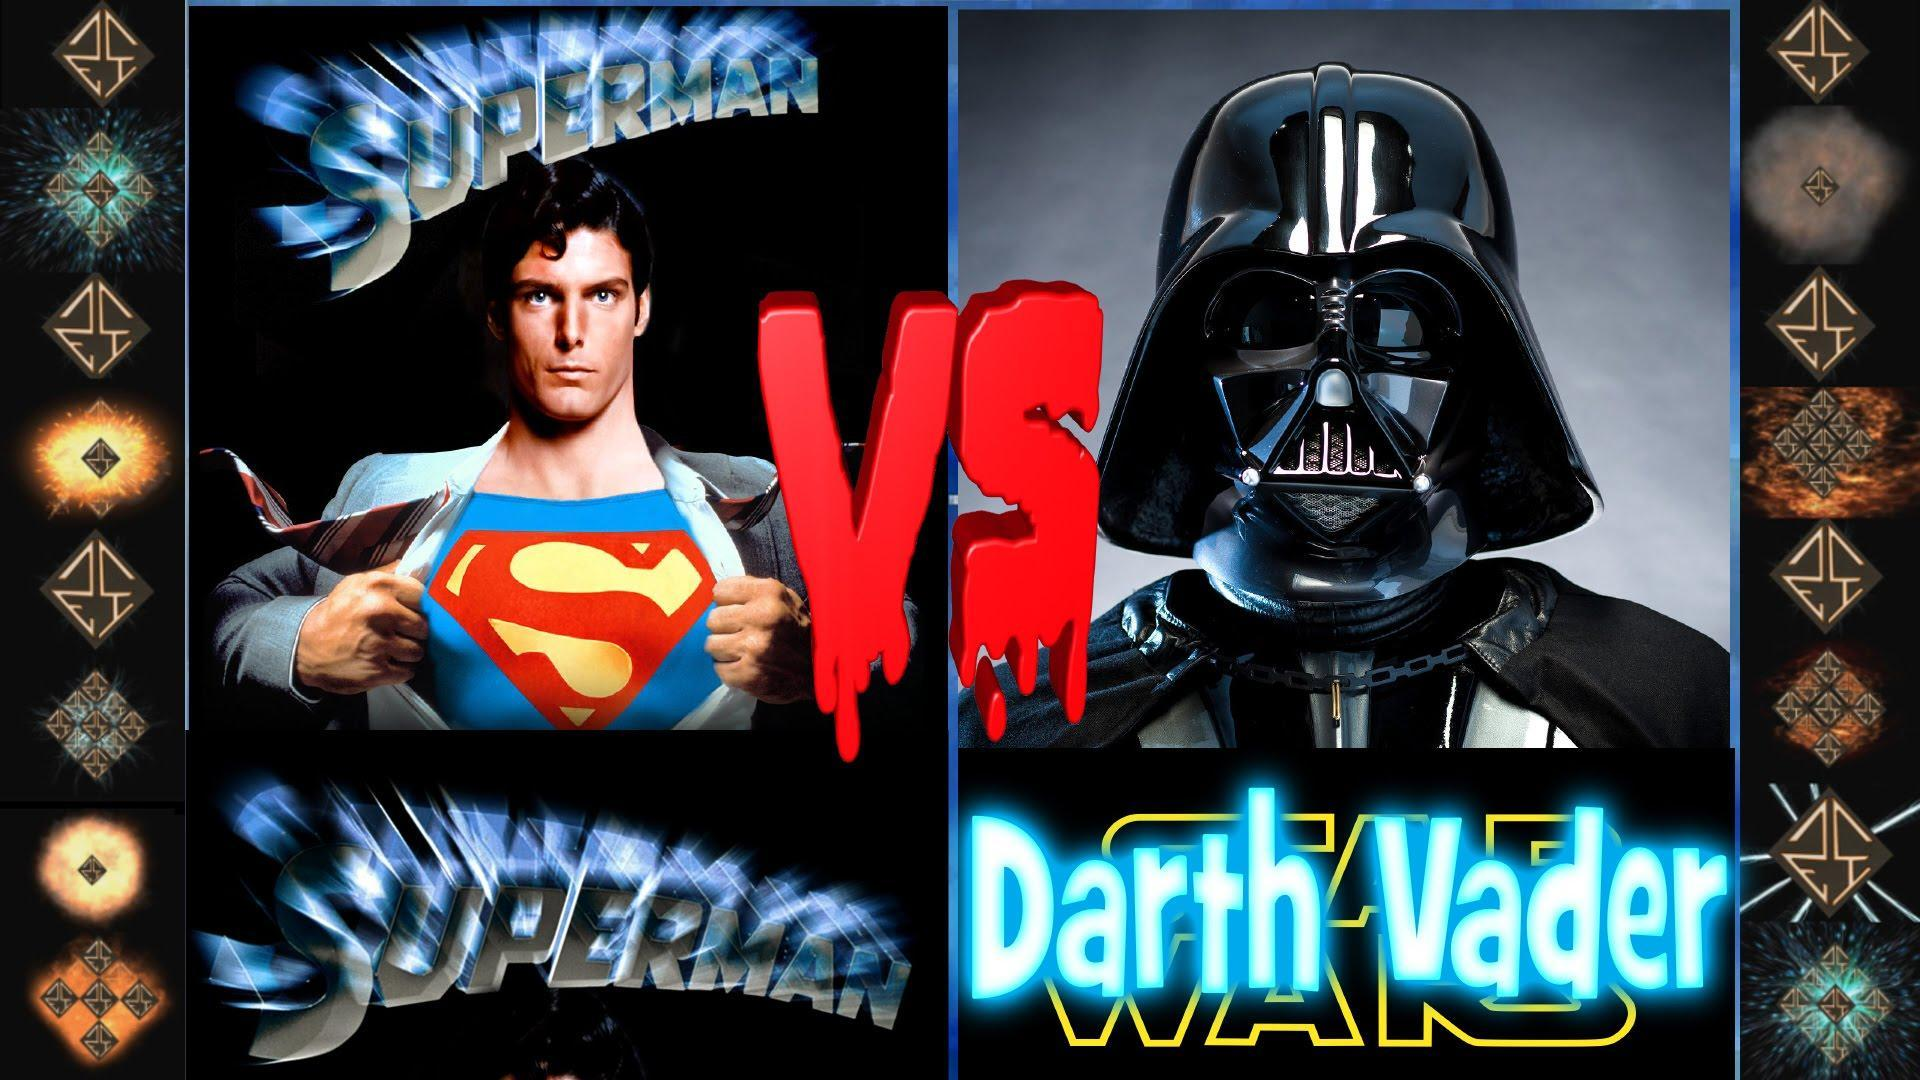 Would Darth Vader vs Superman be a good movie?